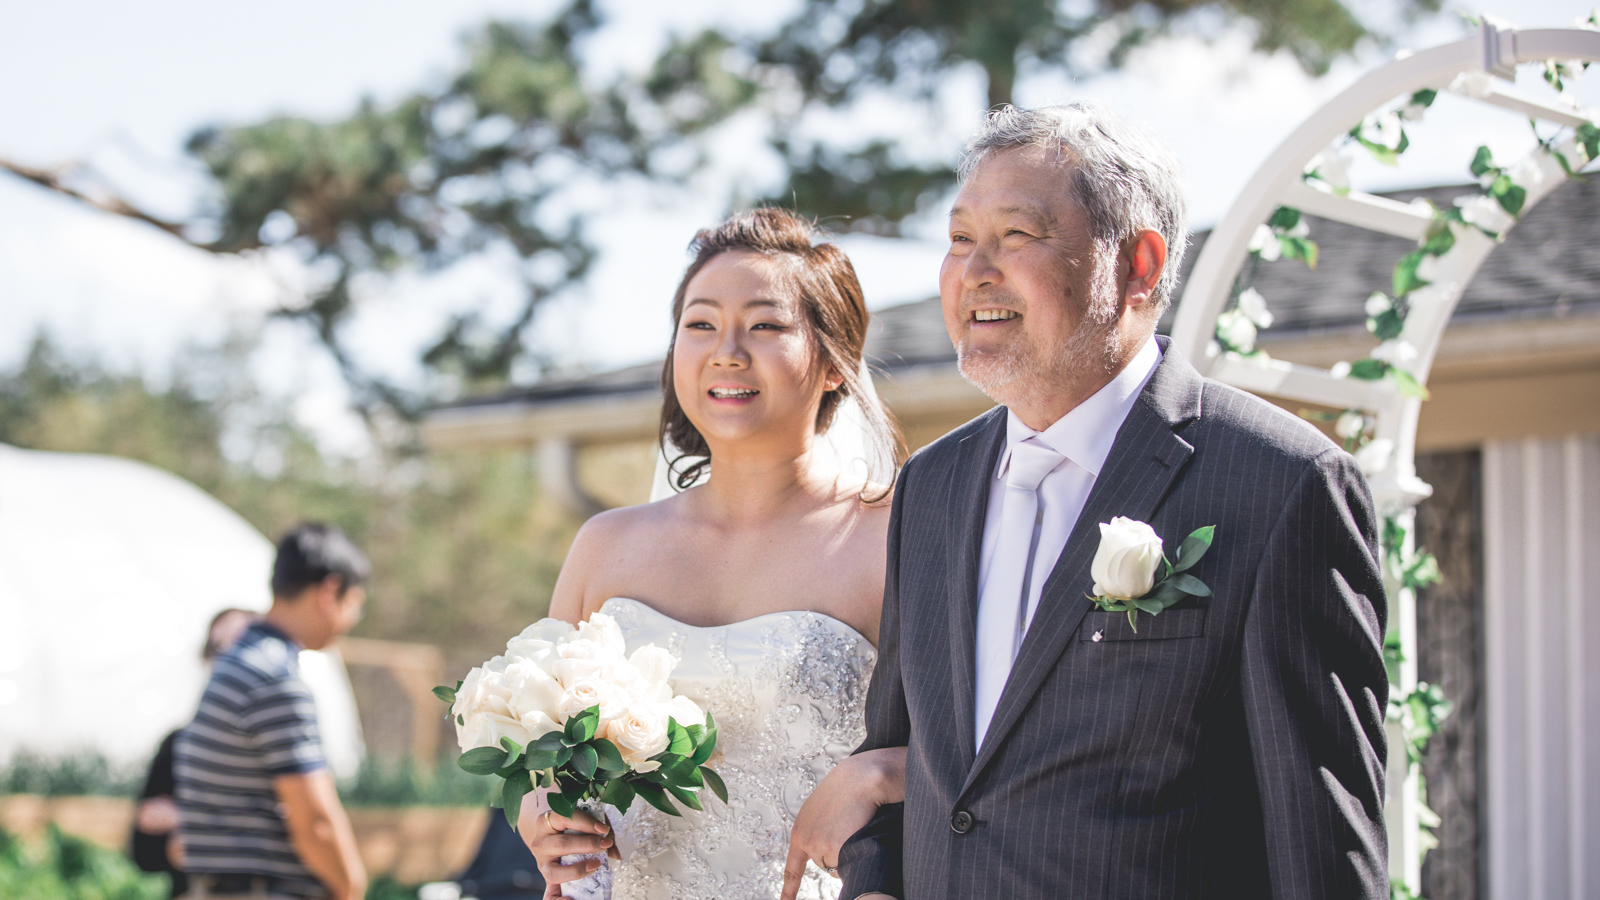 Korean Father walks daughter down the aisle